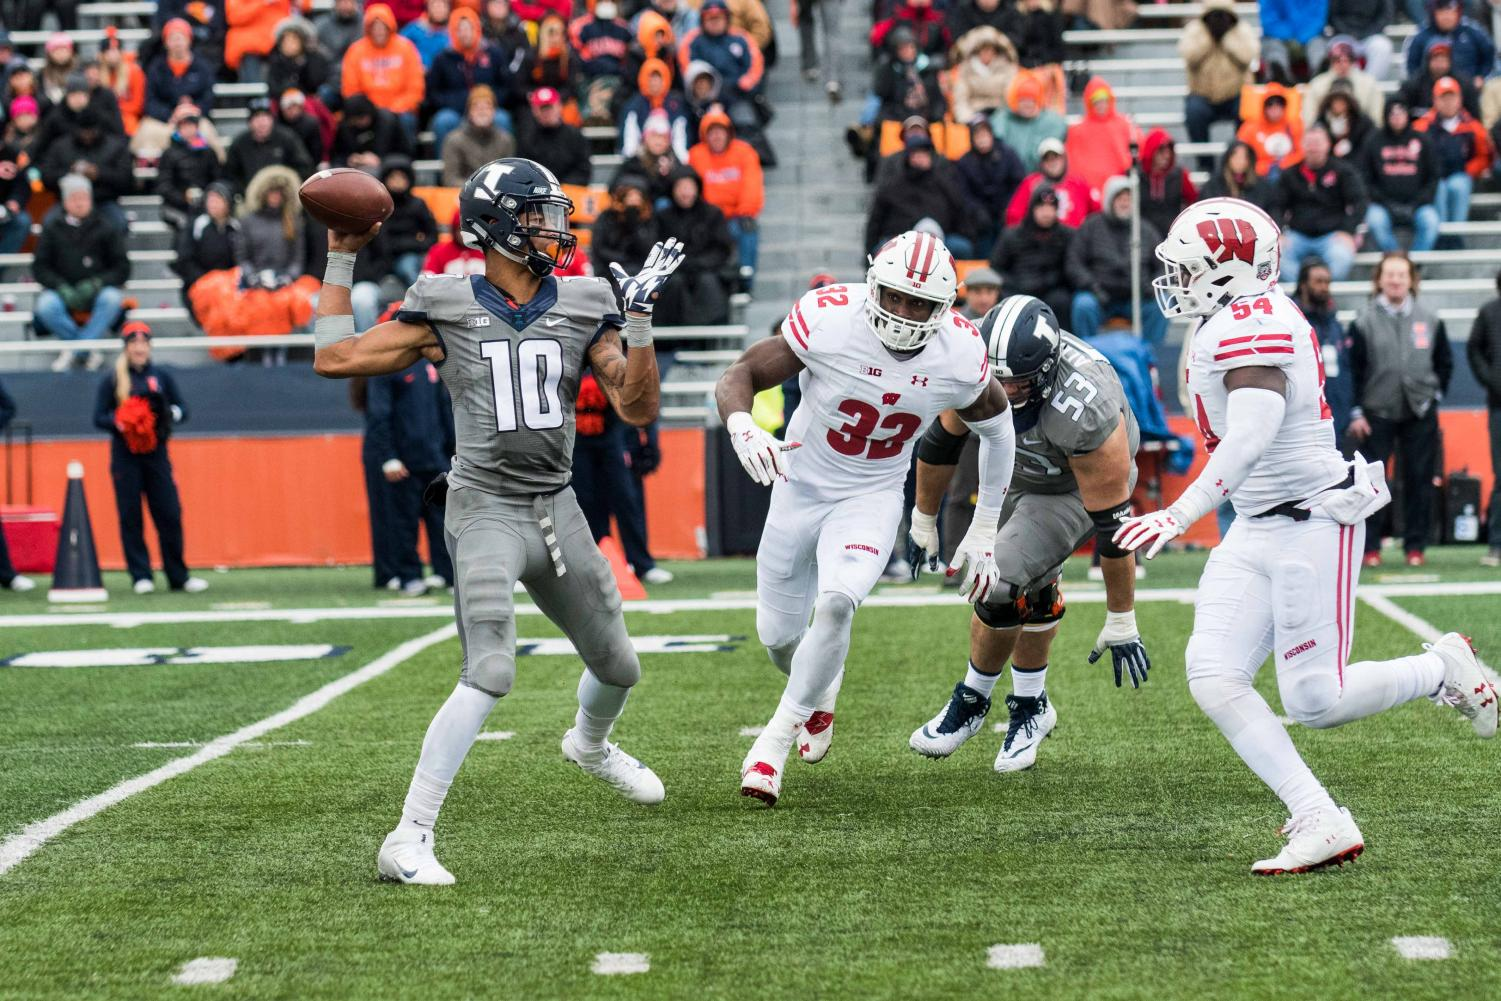 Illinois quarterback Cam Thomas throws a pass on the move during the game against Wisconsin on Oct 28. The Illini lost 24-10.